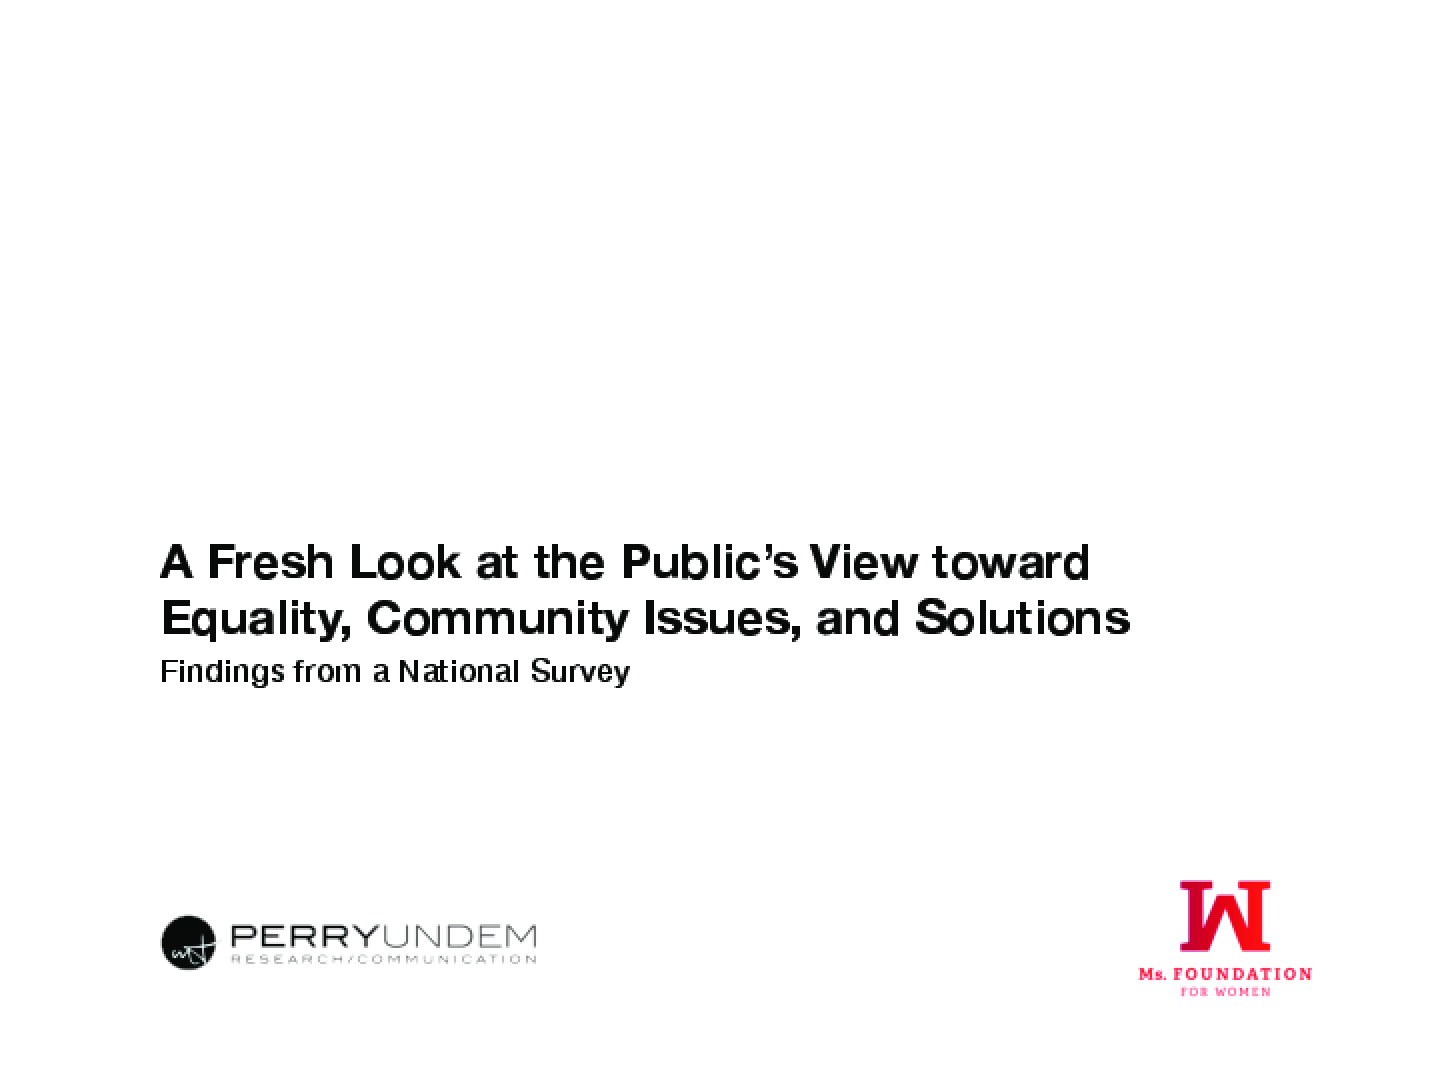 A Fresh Look at the Public's View Toward Equality, Community Issues, and Solutions